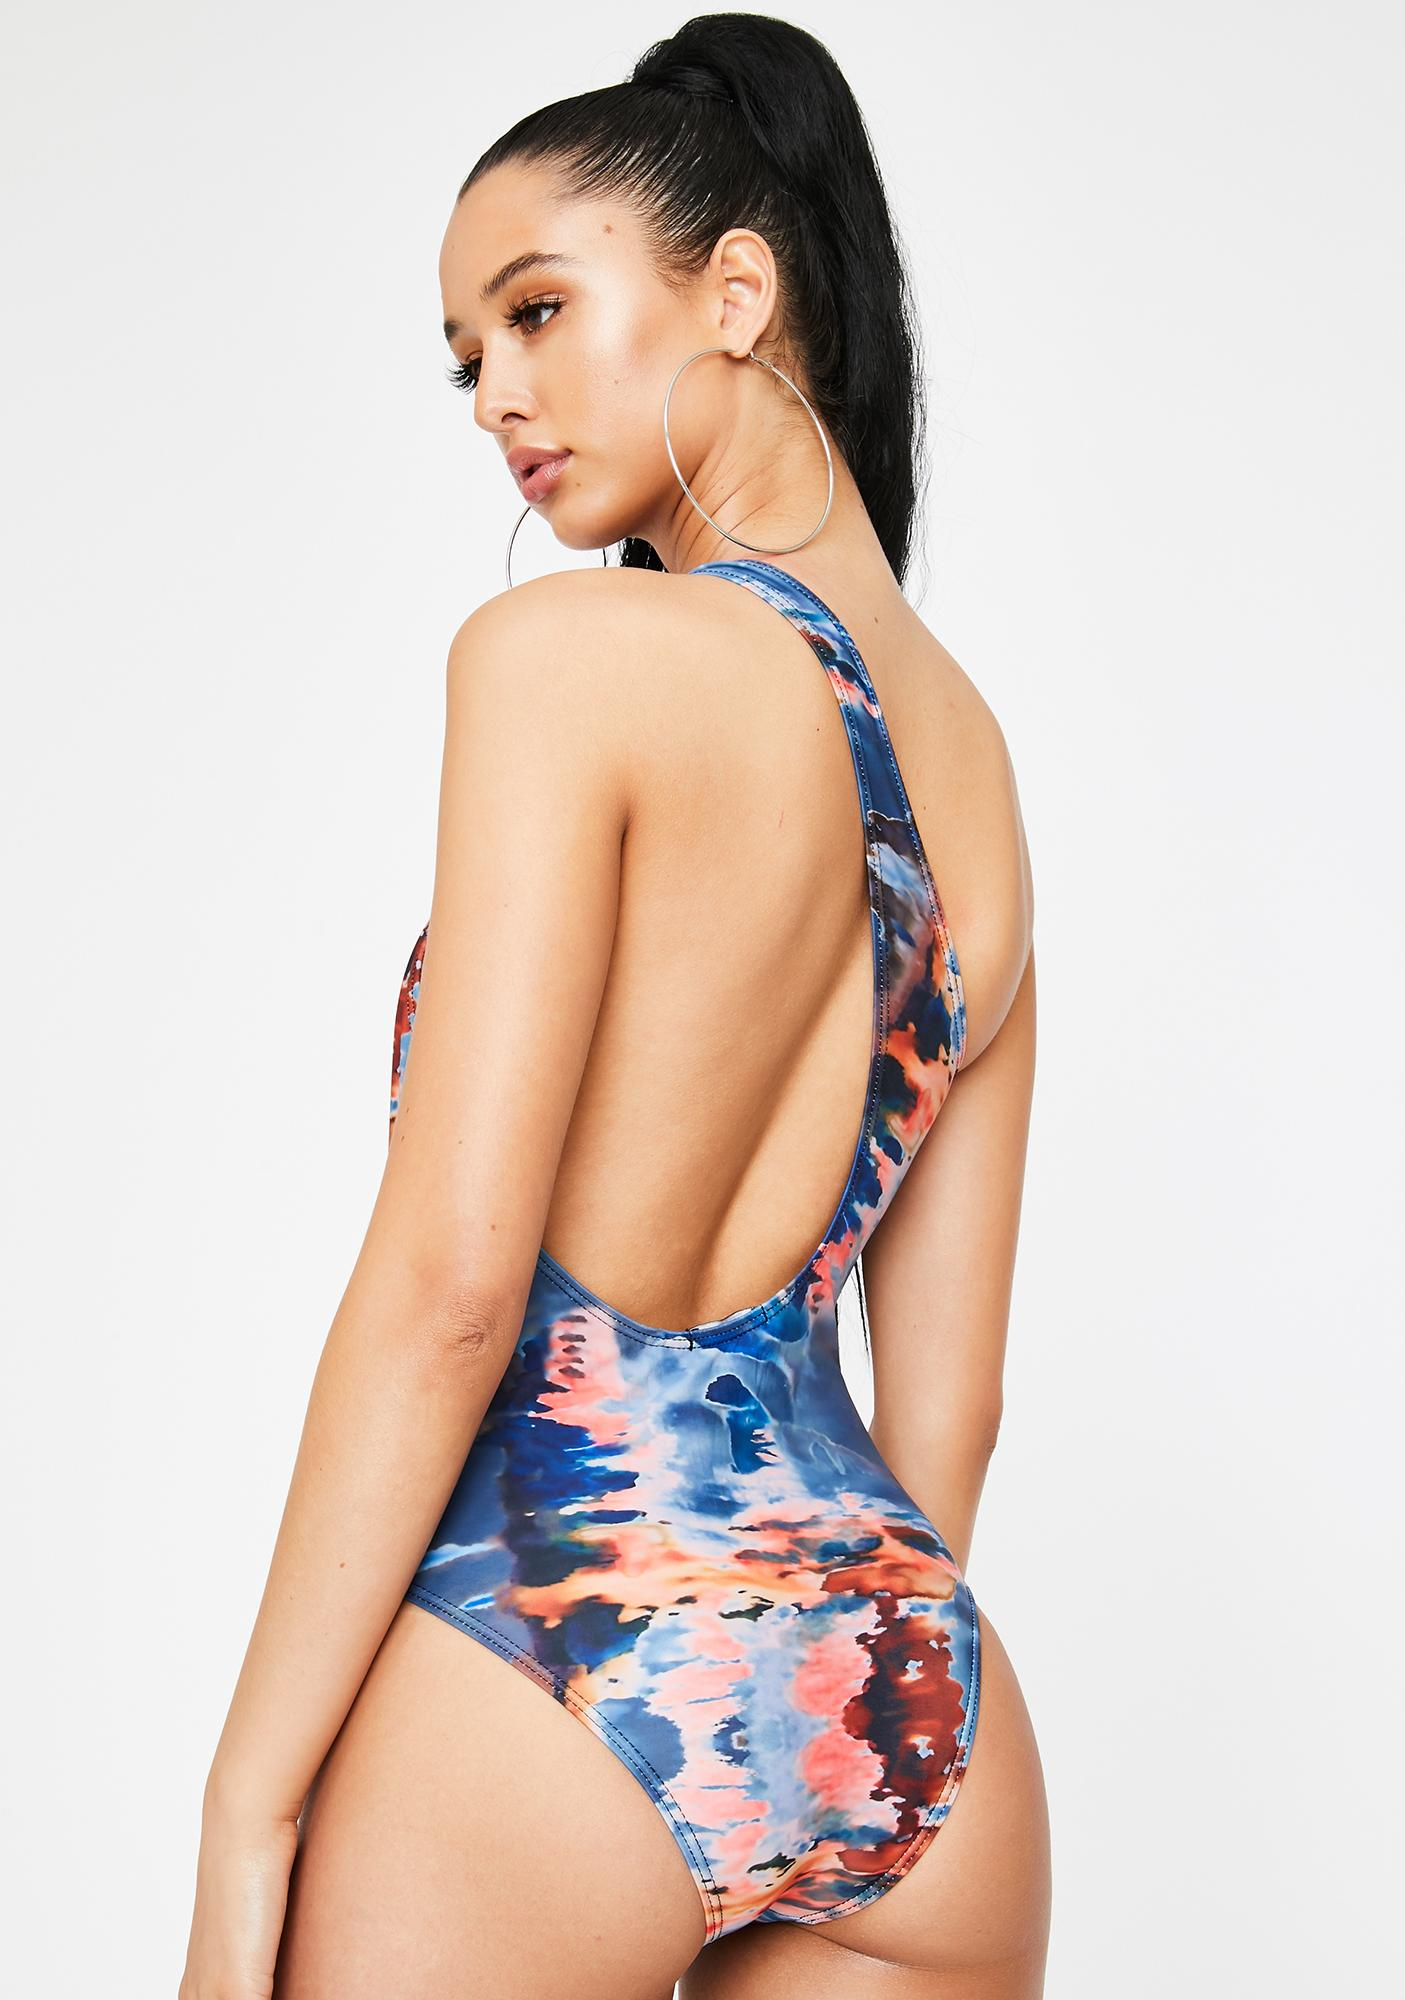 Poster Grl Inked Steady Mobbin' One Piece Swimsuit